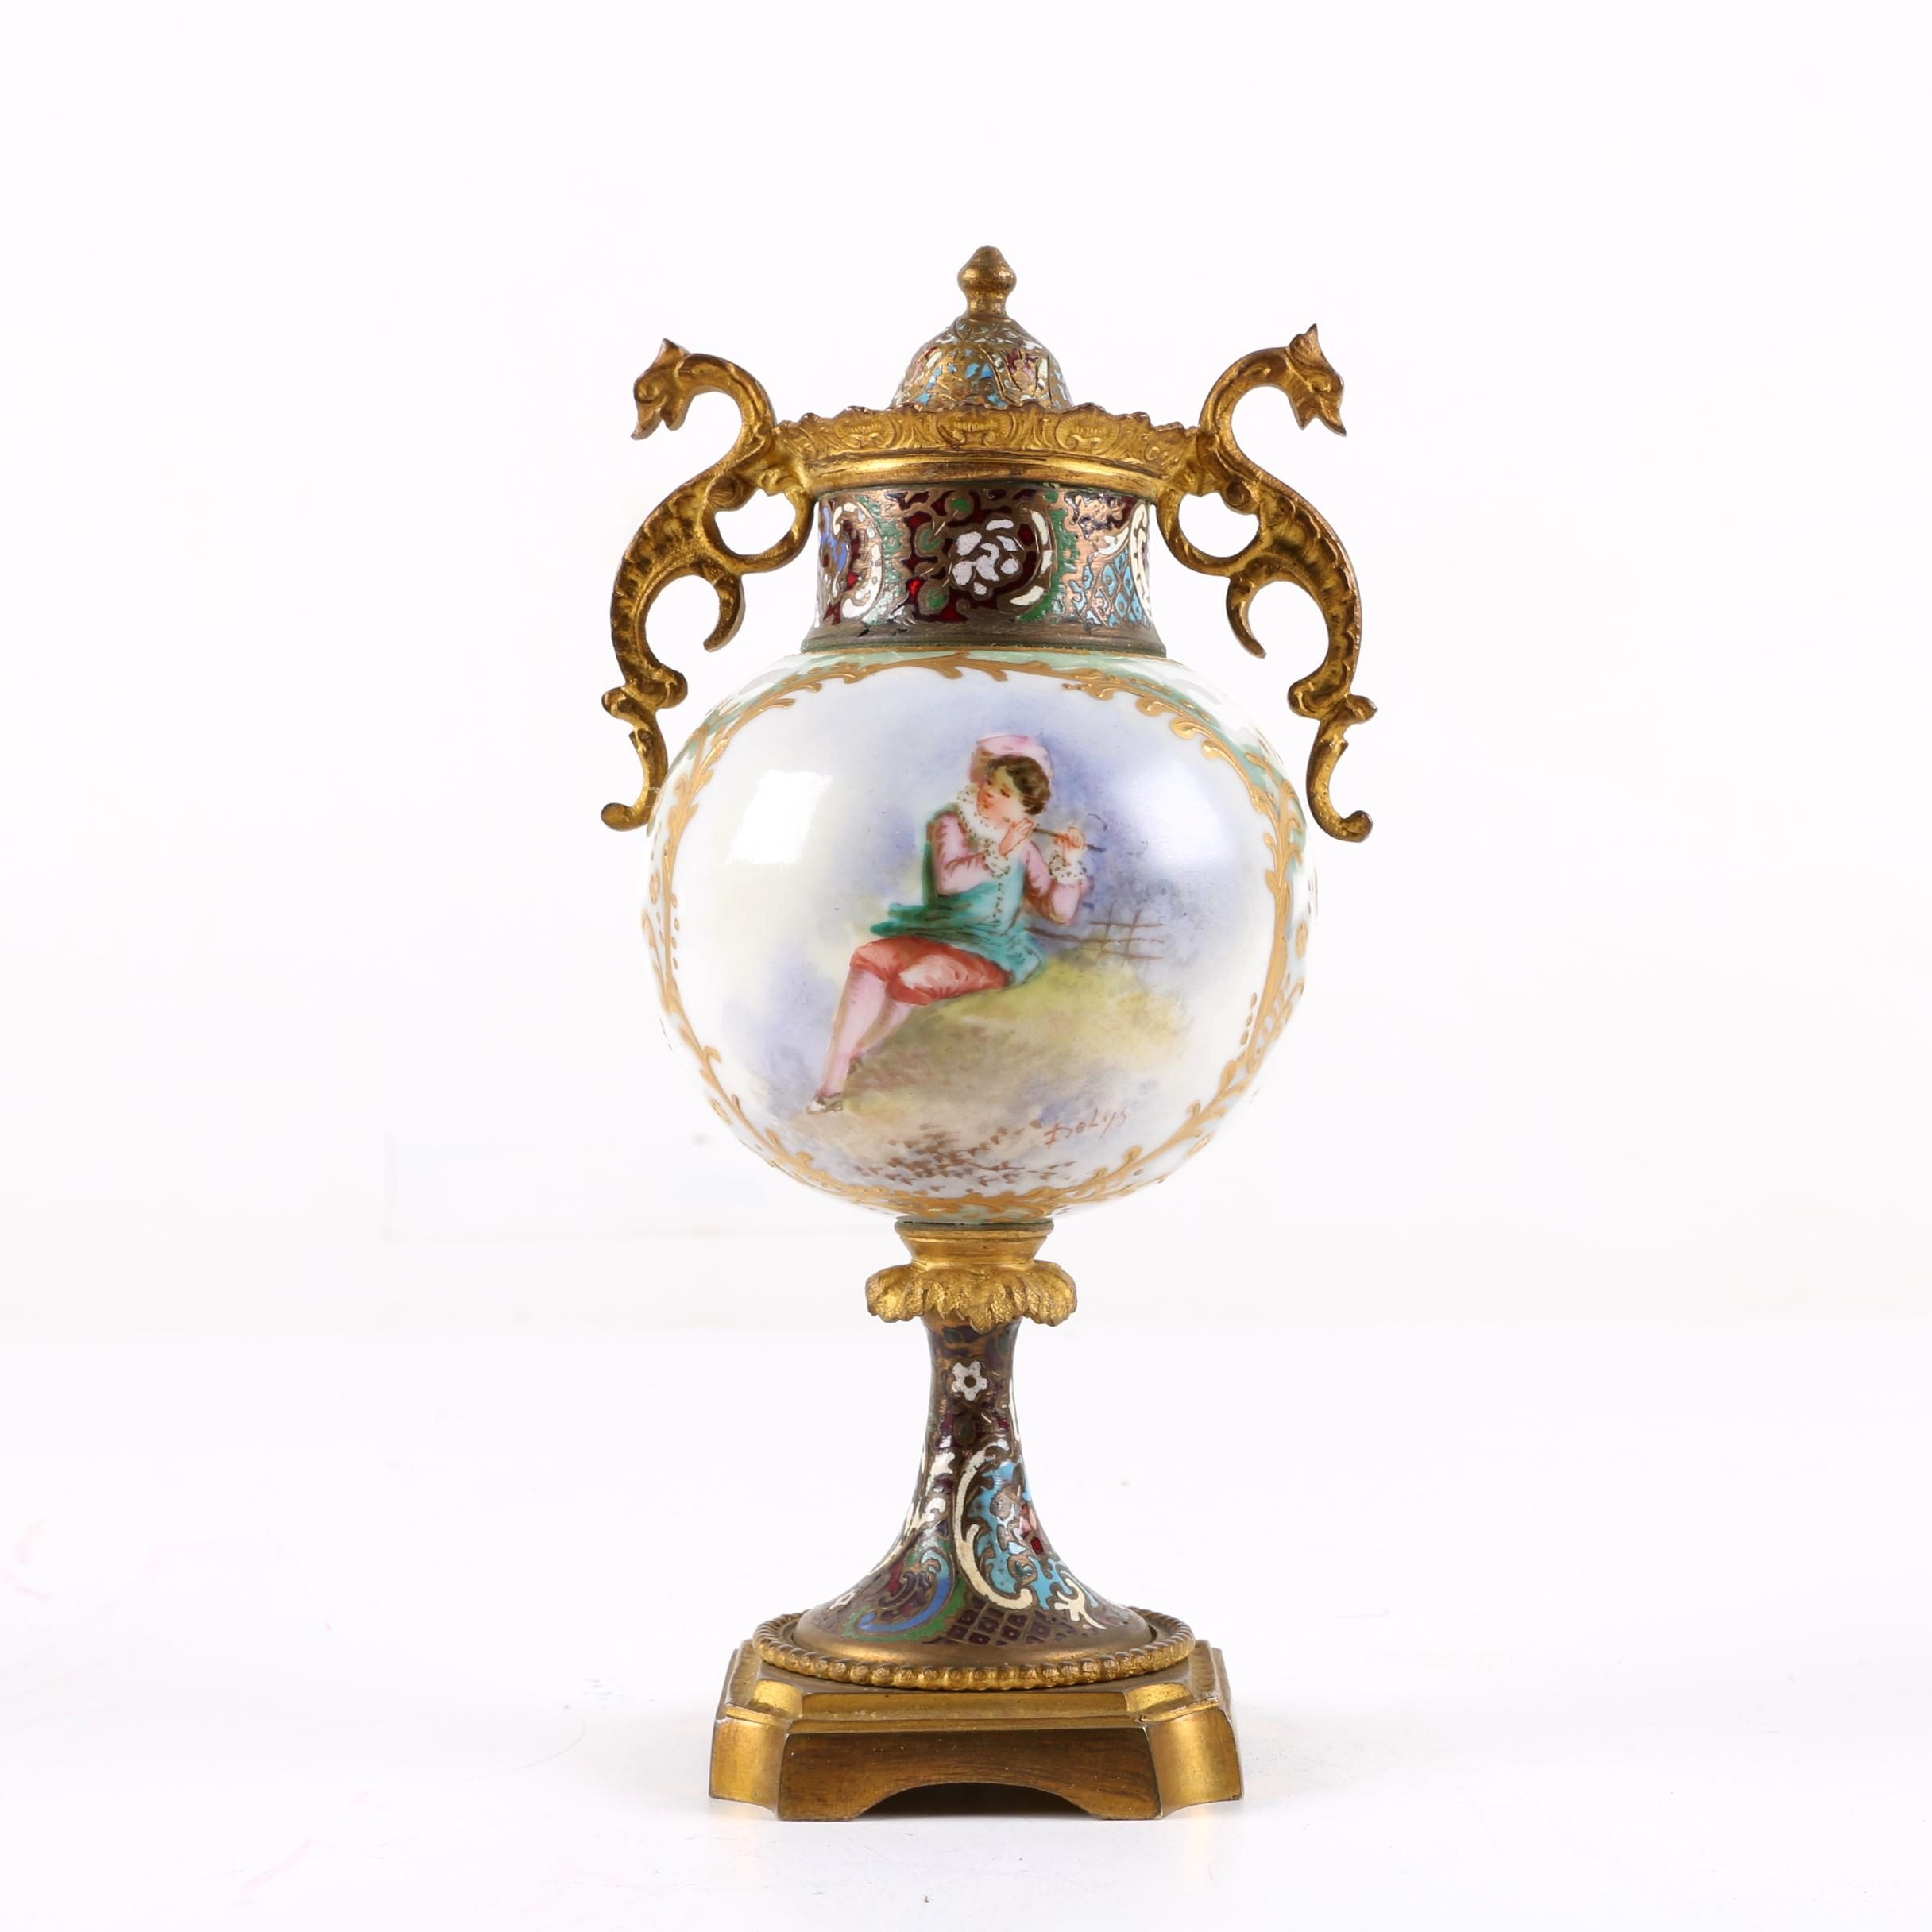 Signed Antique Hand-Painted French Sevres Style Urn with Champleve Accents